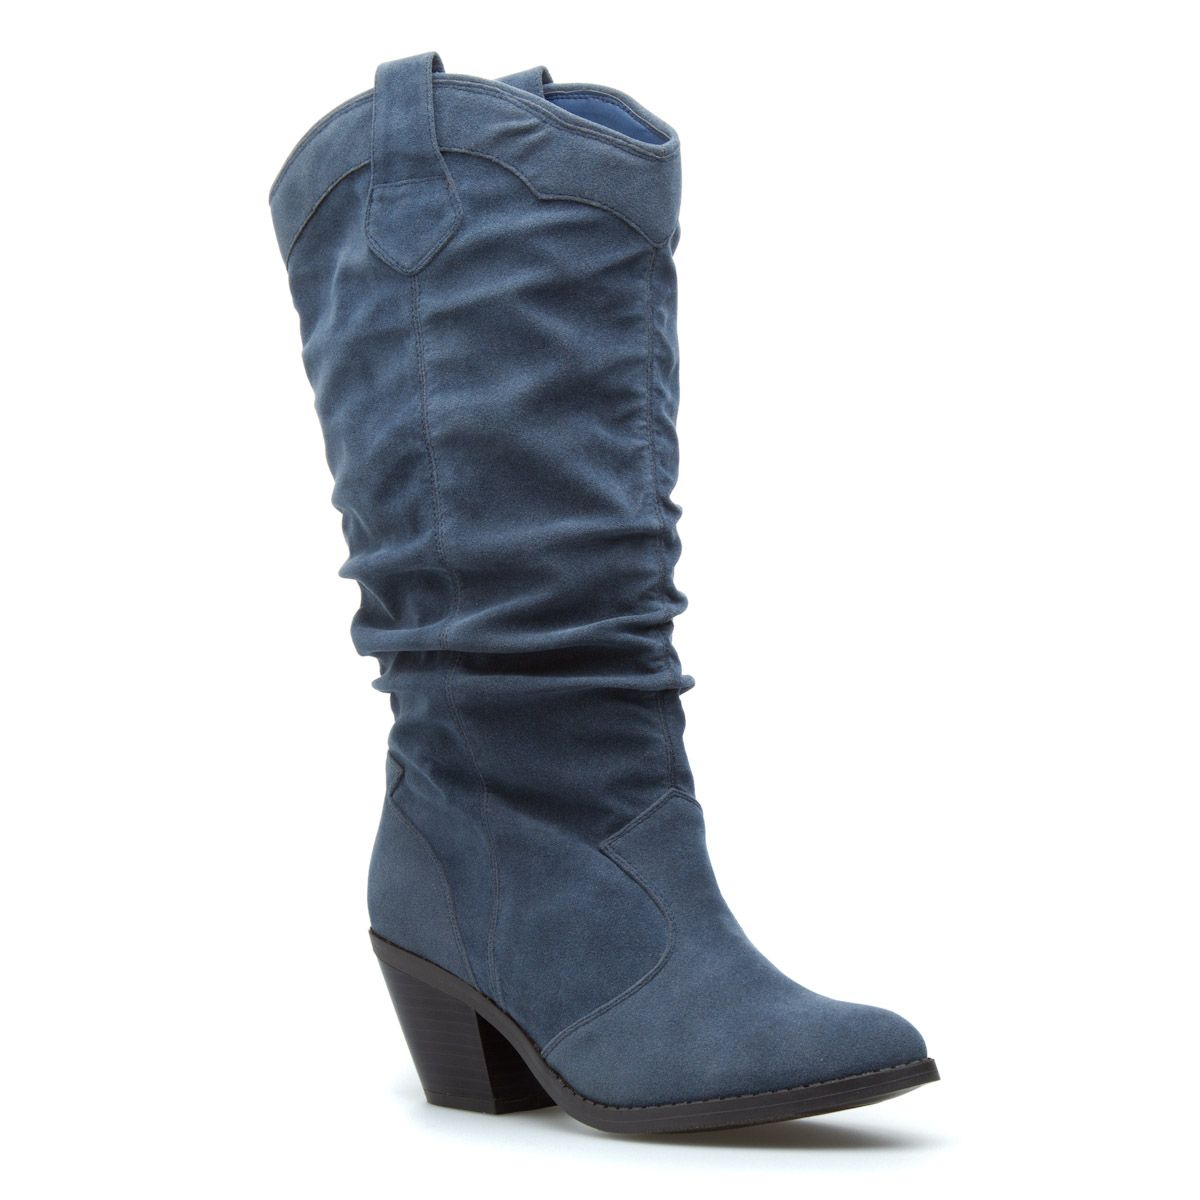 Blue Slouch Boots. | Boots, Blue suede